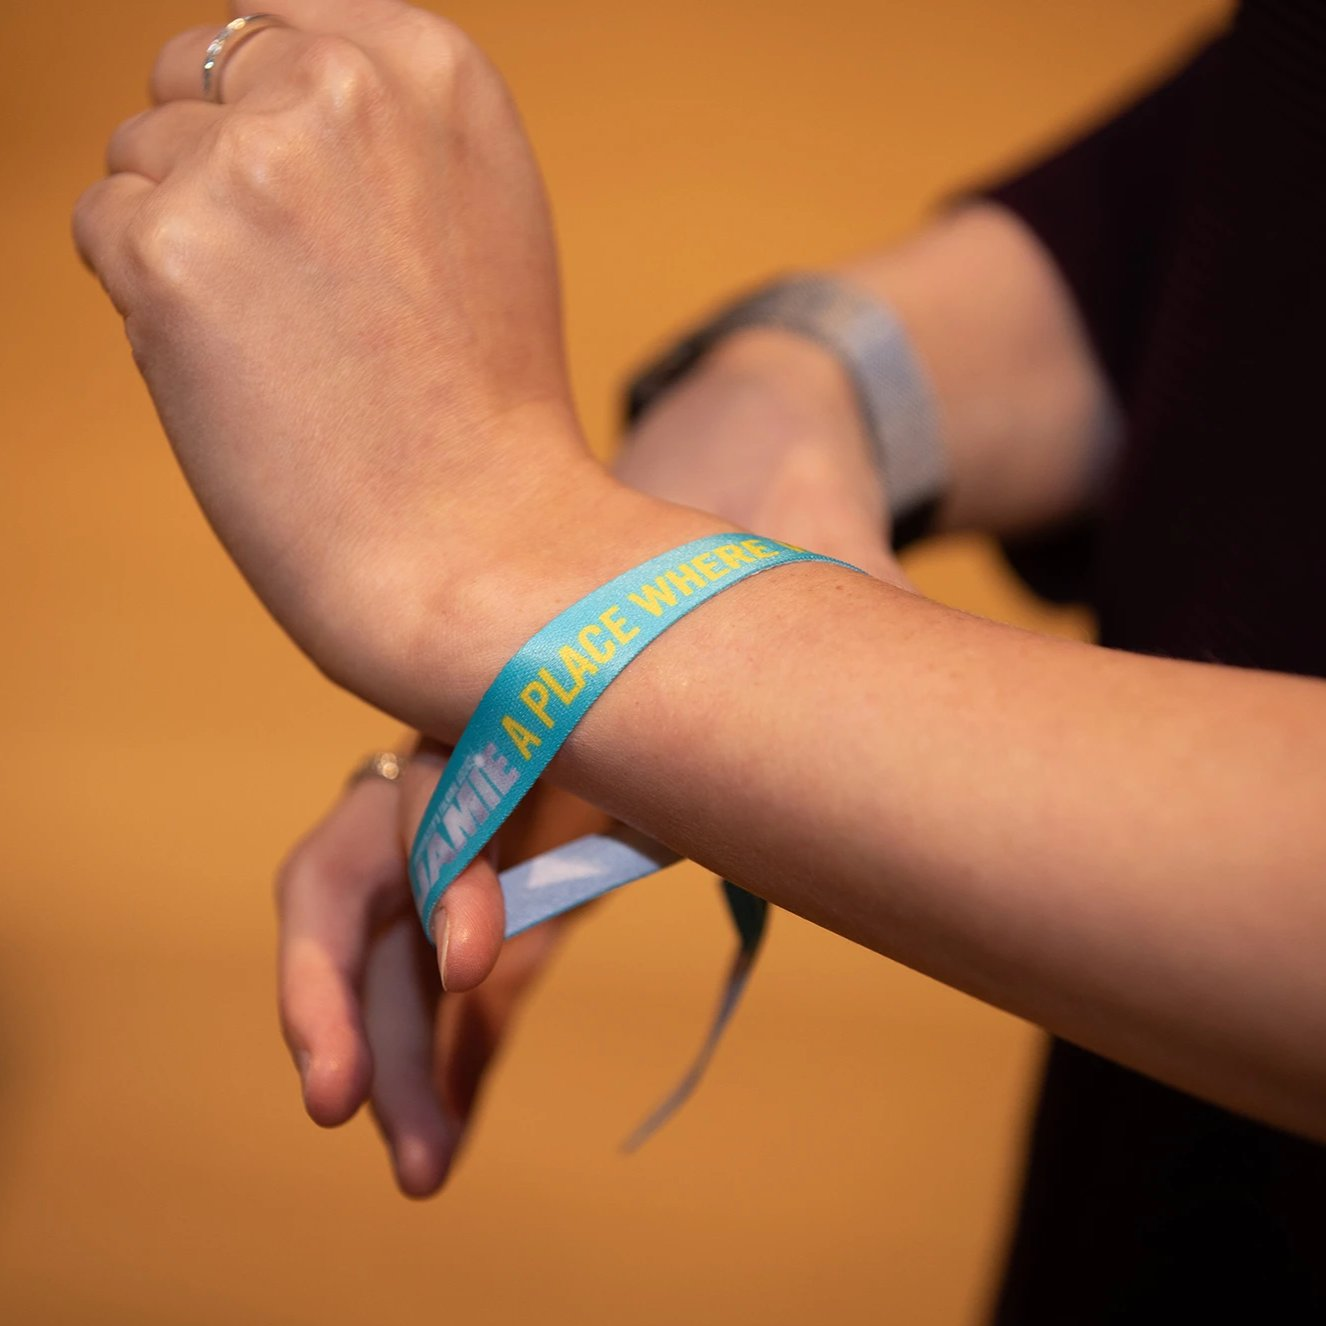 Everybody's Talking About Jamie Anti-Bullying Wristband